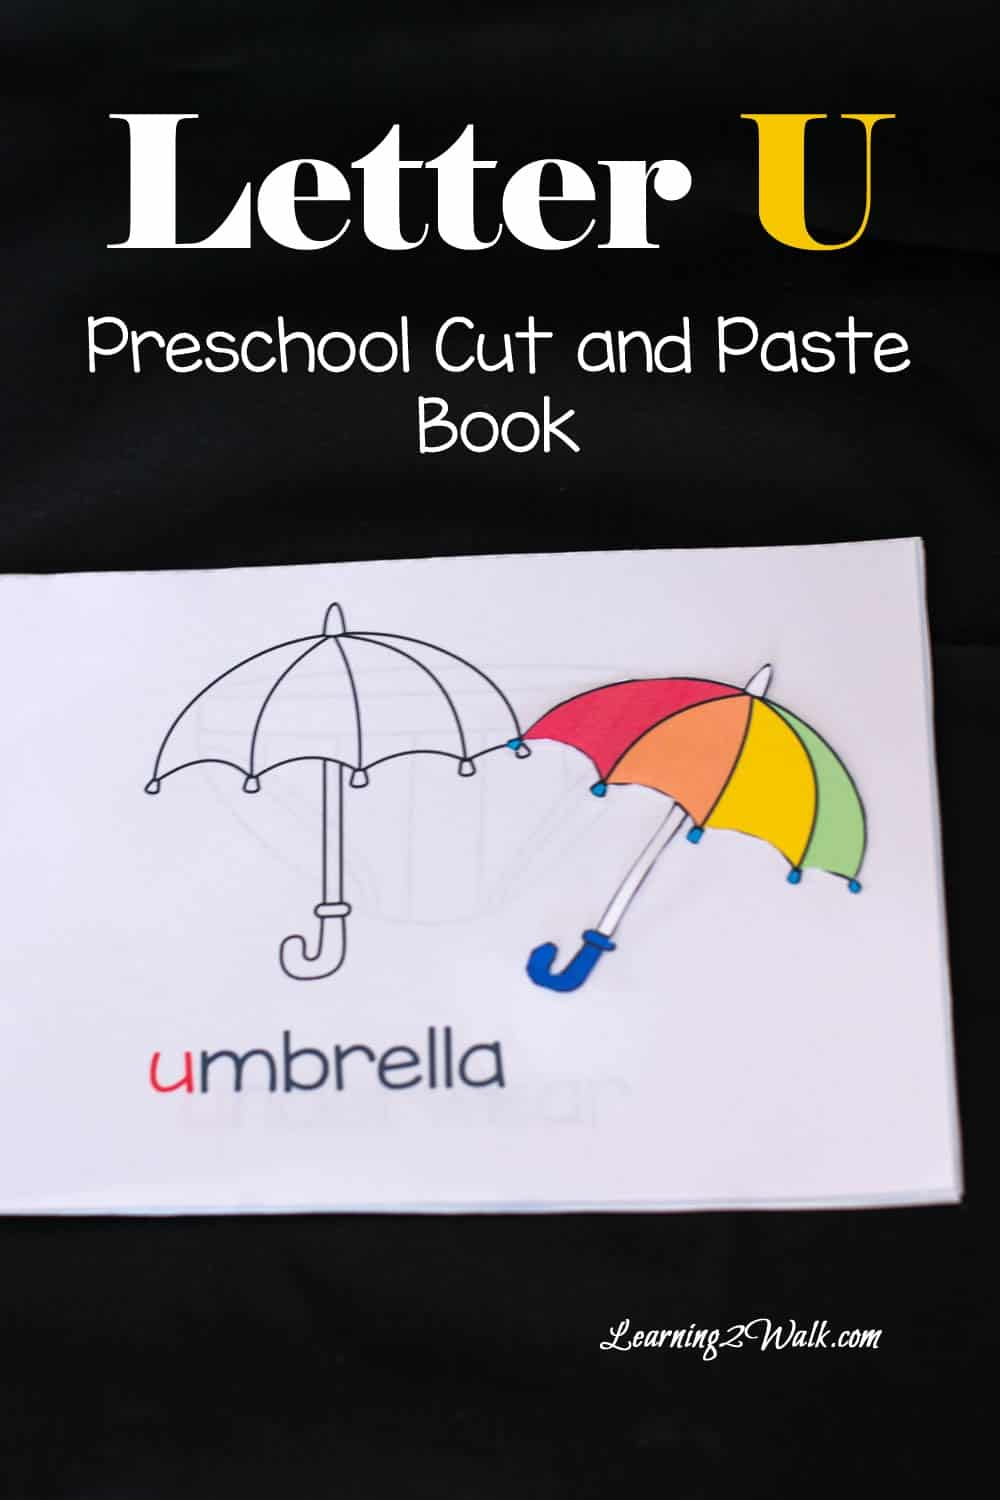 Letter U Preschool Cut and Paste Book